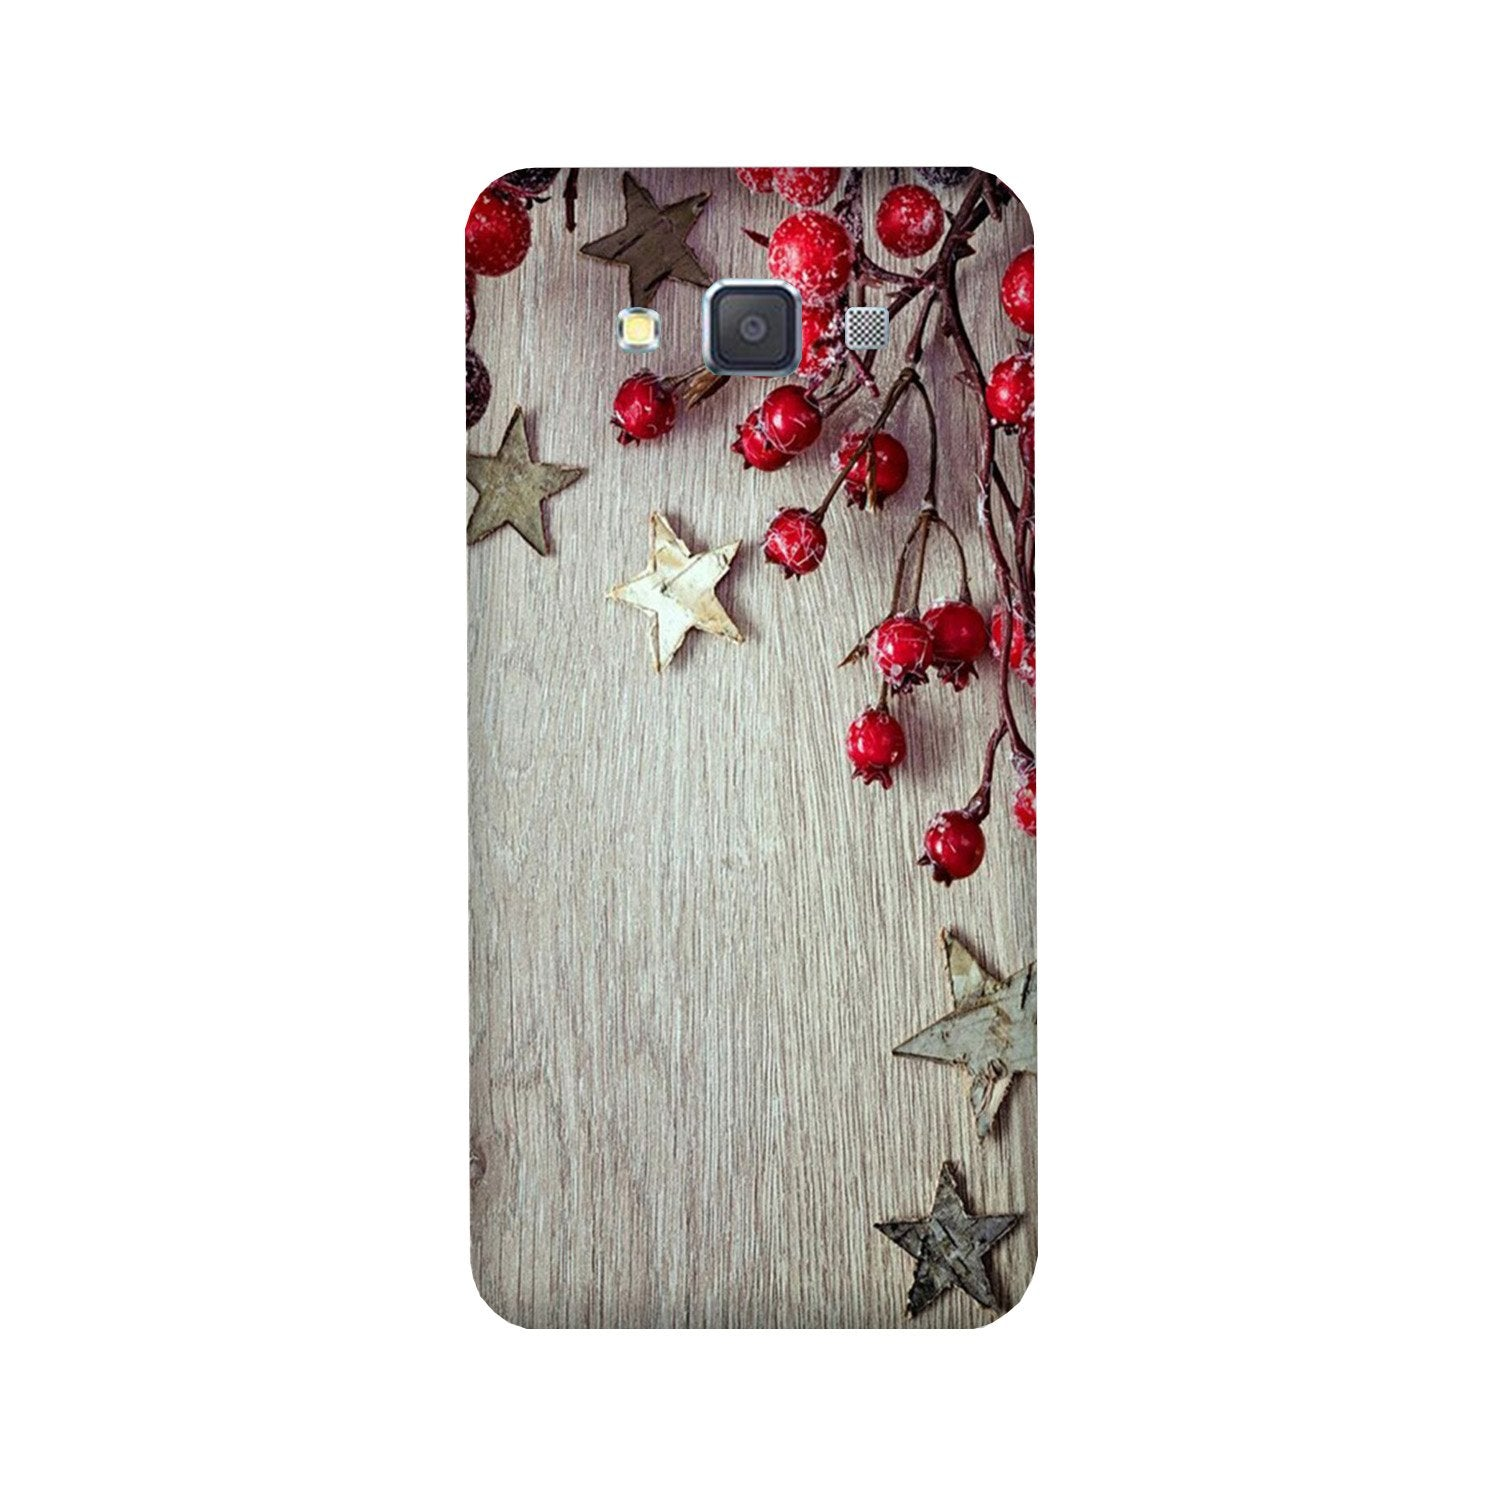 Stars Case for Galaxy A3 (2015)